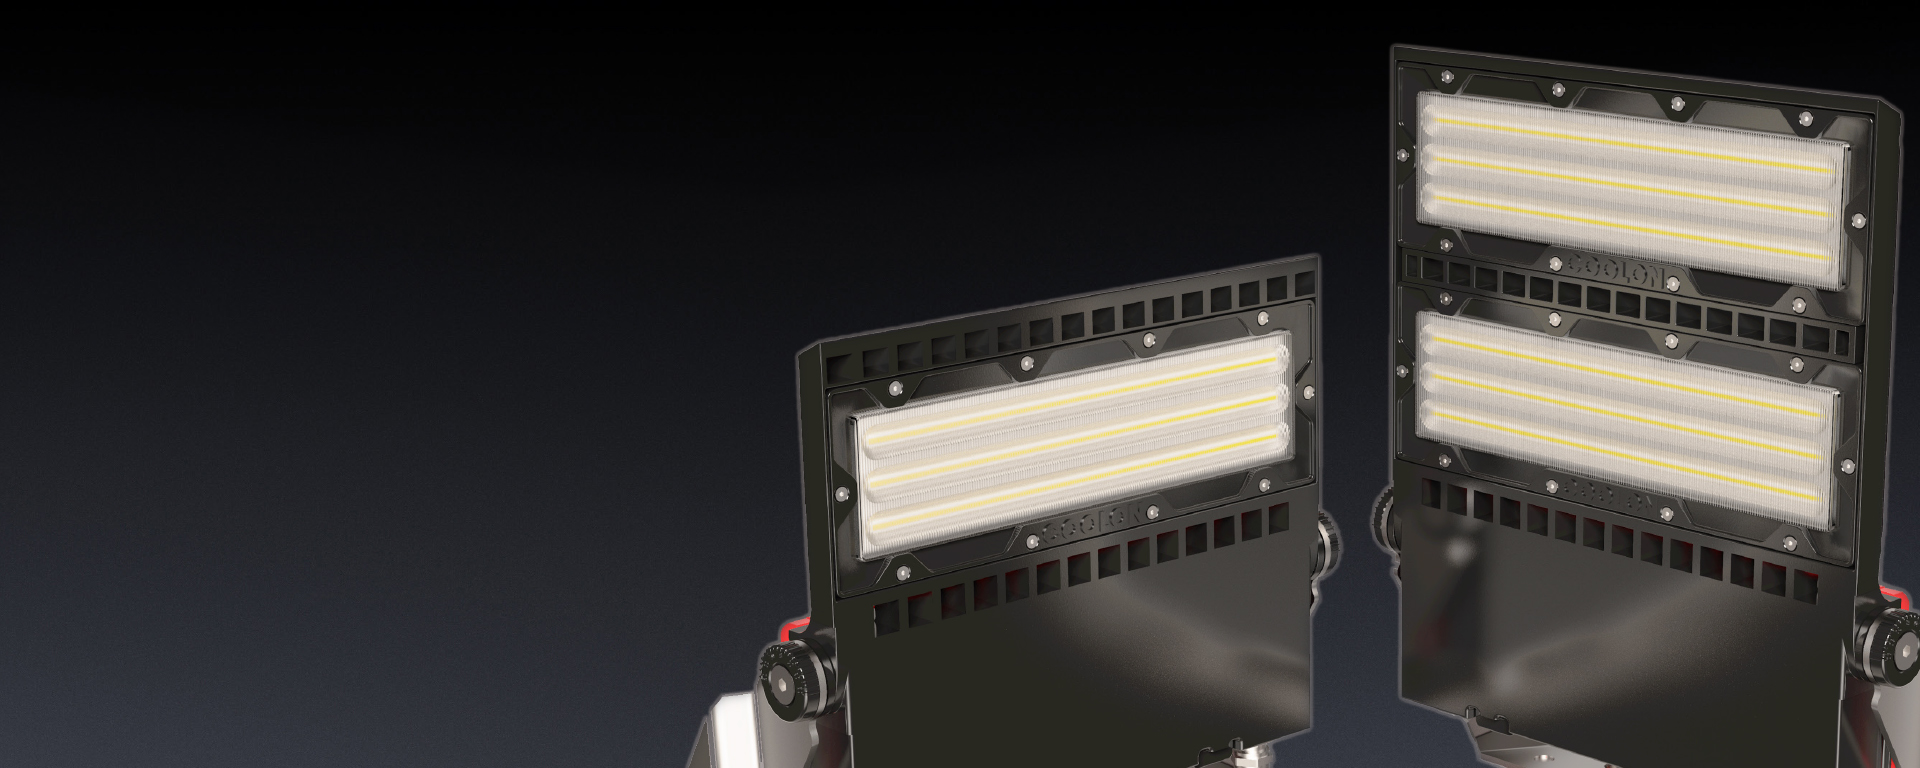 Butch LED mining Floodlight in application, installed on a mining/industrial site